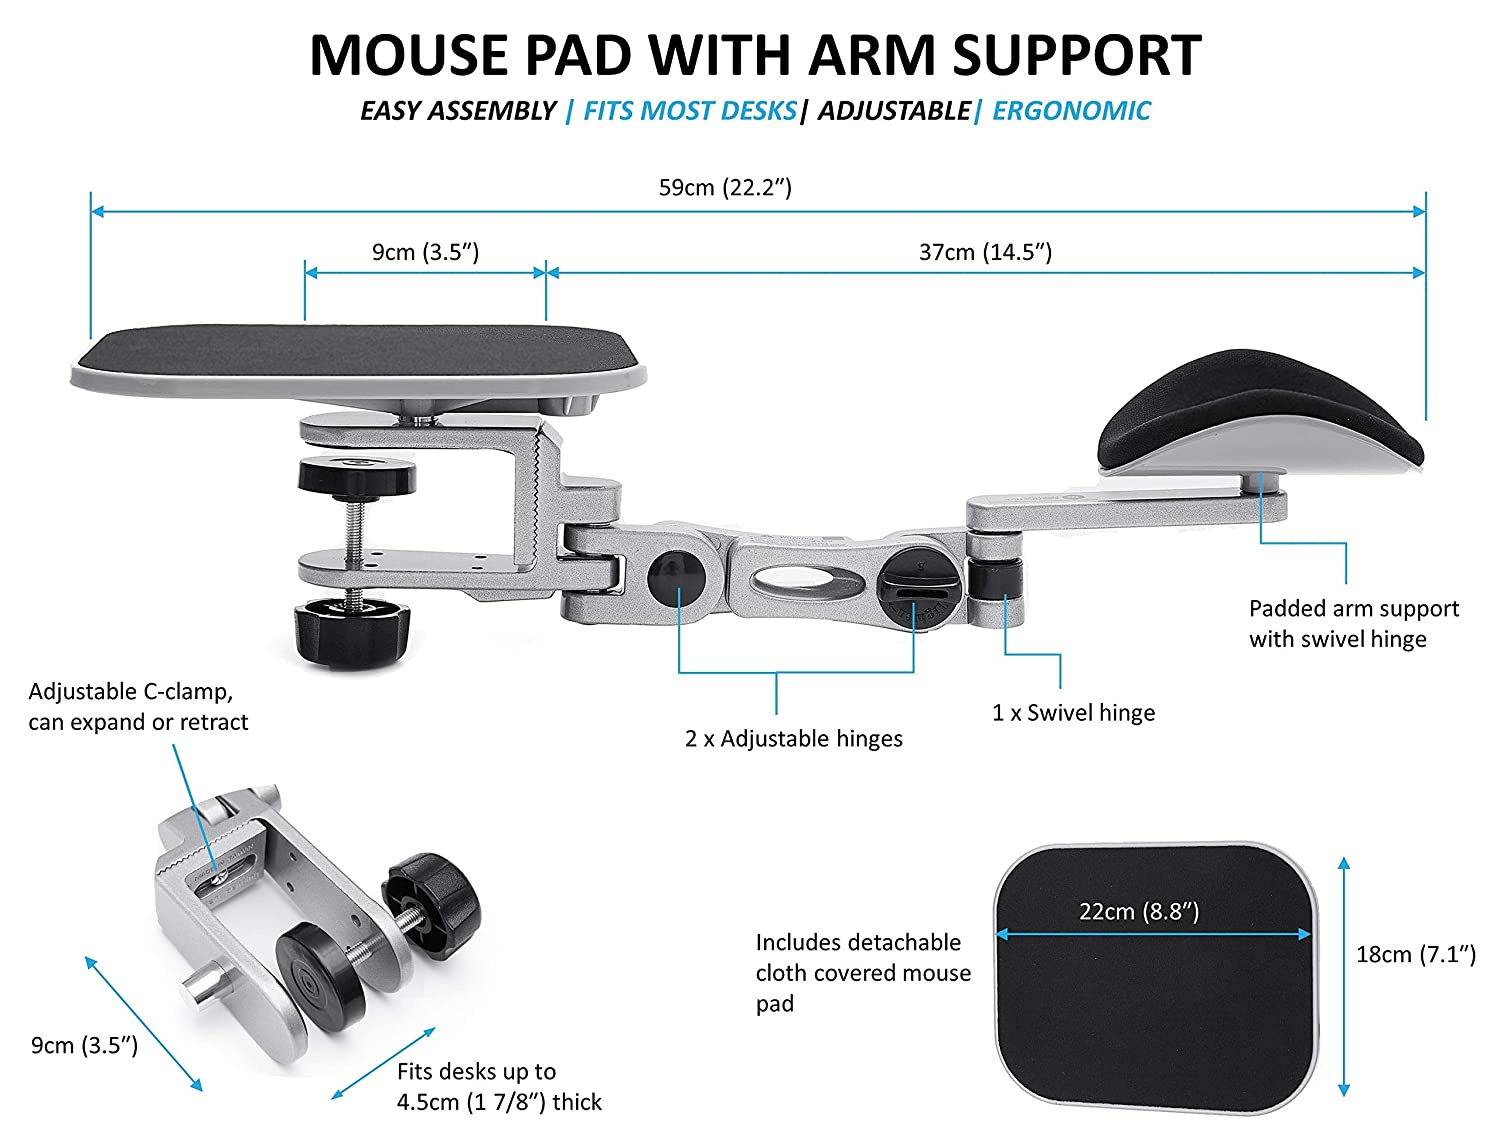 Ergonomic Mouse Pad with Wrist and Arm Support Ergoactive Pro Series Adjustable Arm Support for Most Desk Sizes